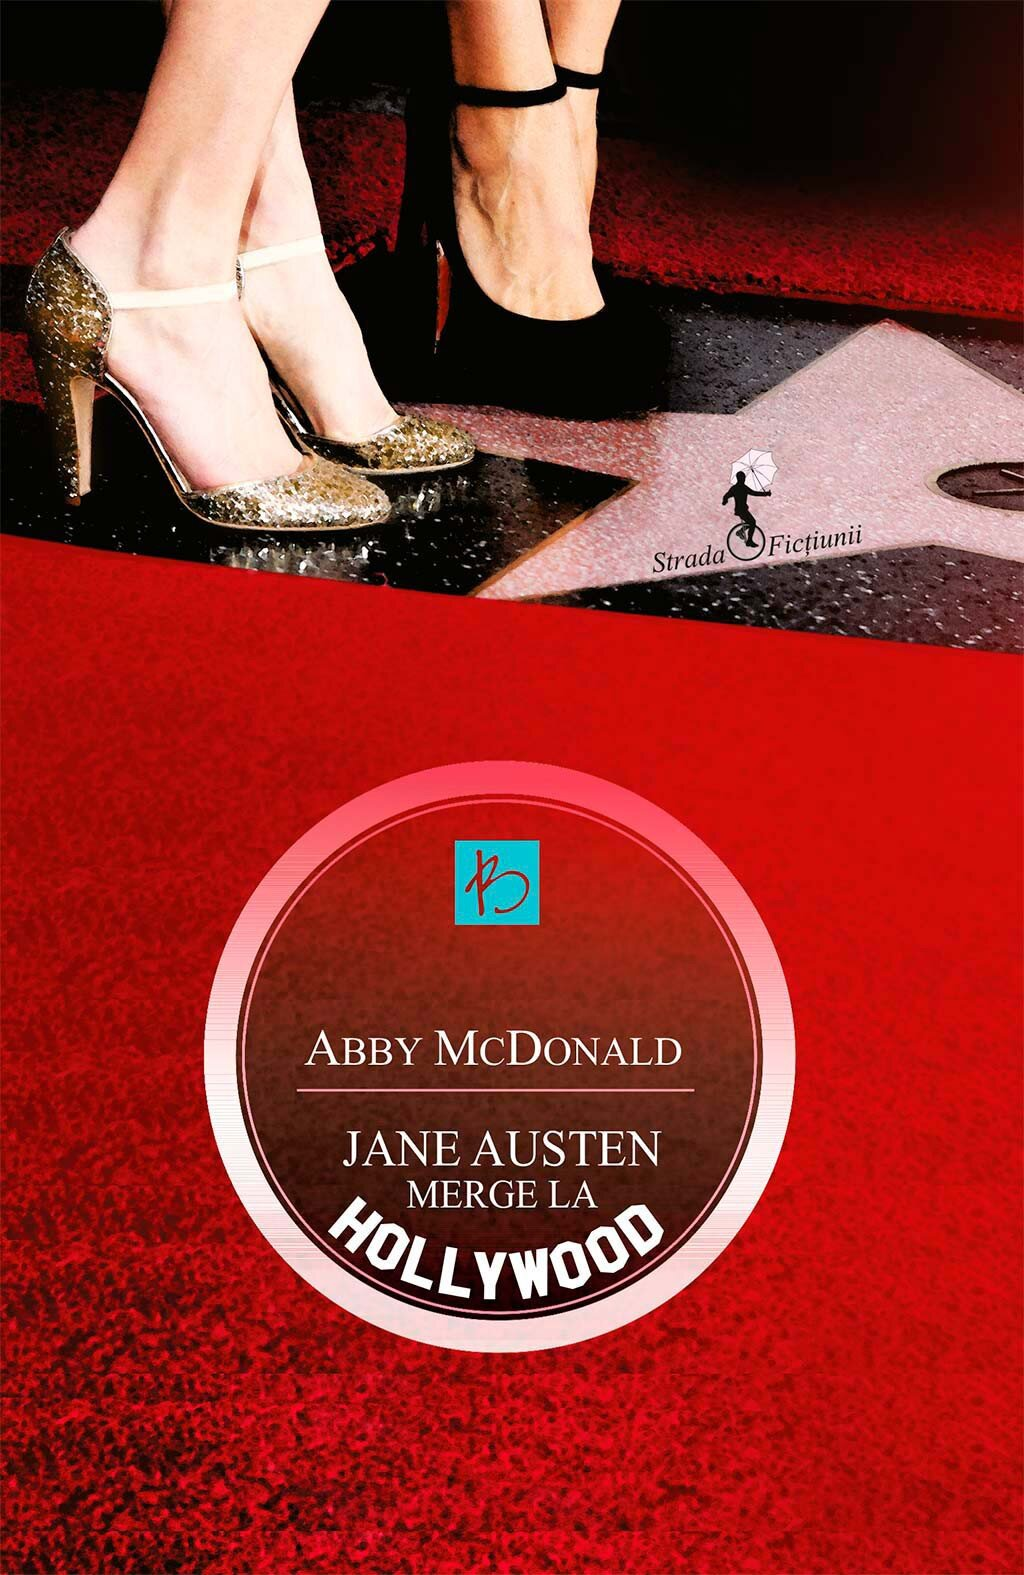 Jane Austen merge la Hollywood (eBook)